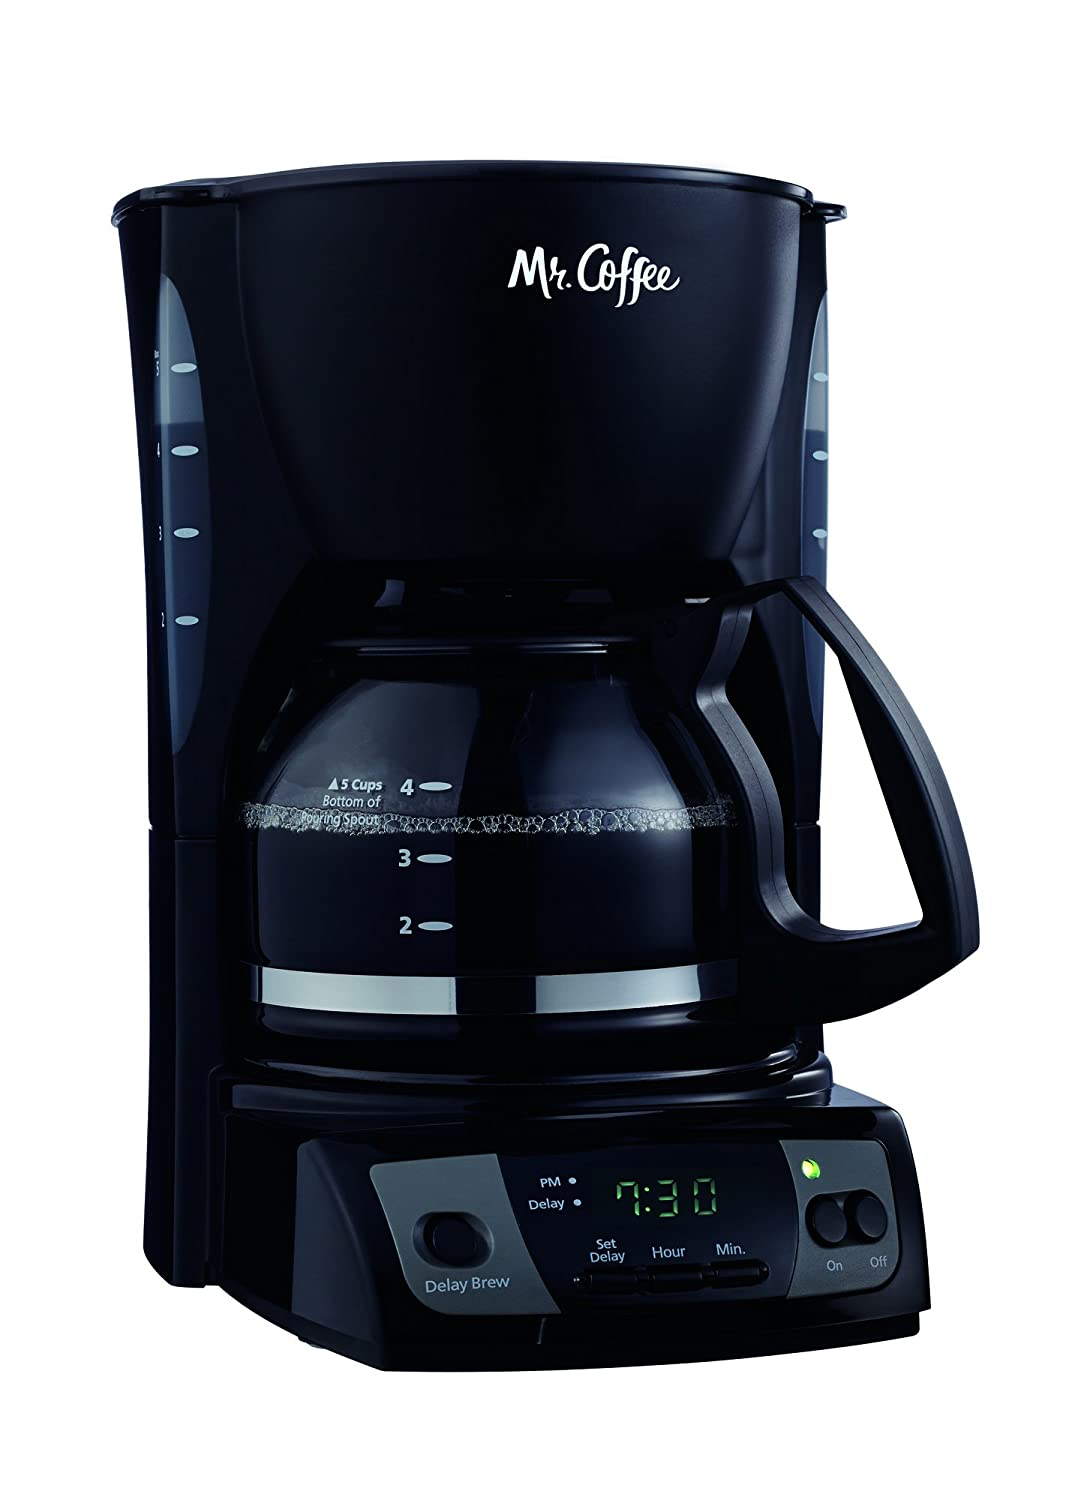 Mr. Coffee Simple Brew 5-Cup Programmable Coffee Maker, Black - CGX7-RB